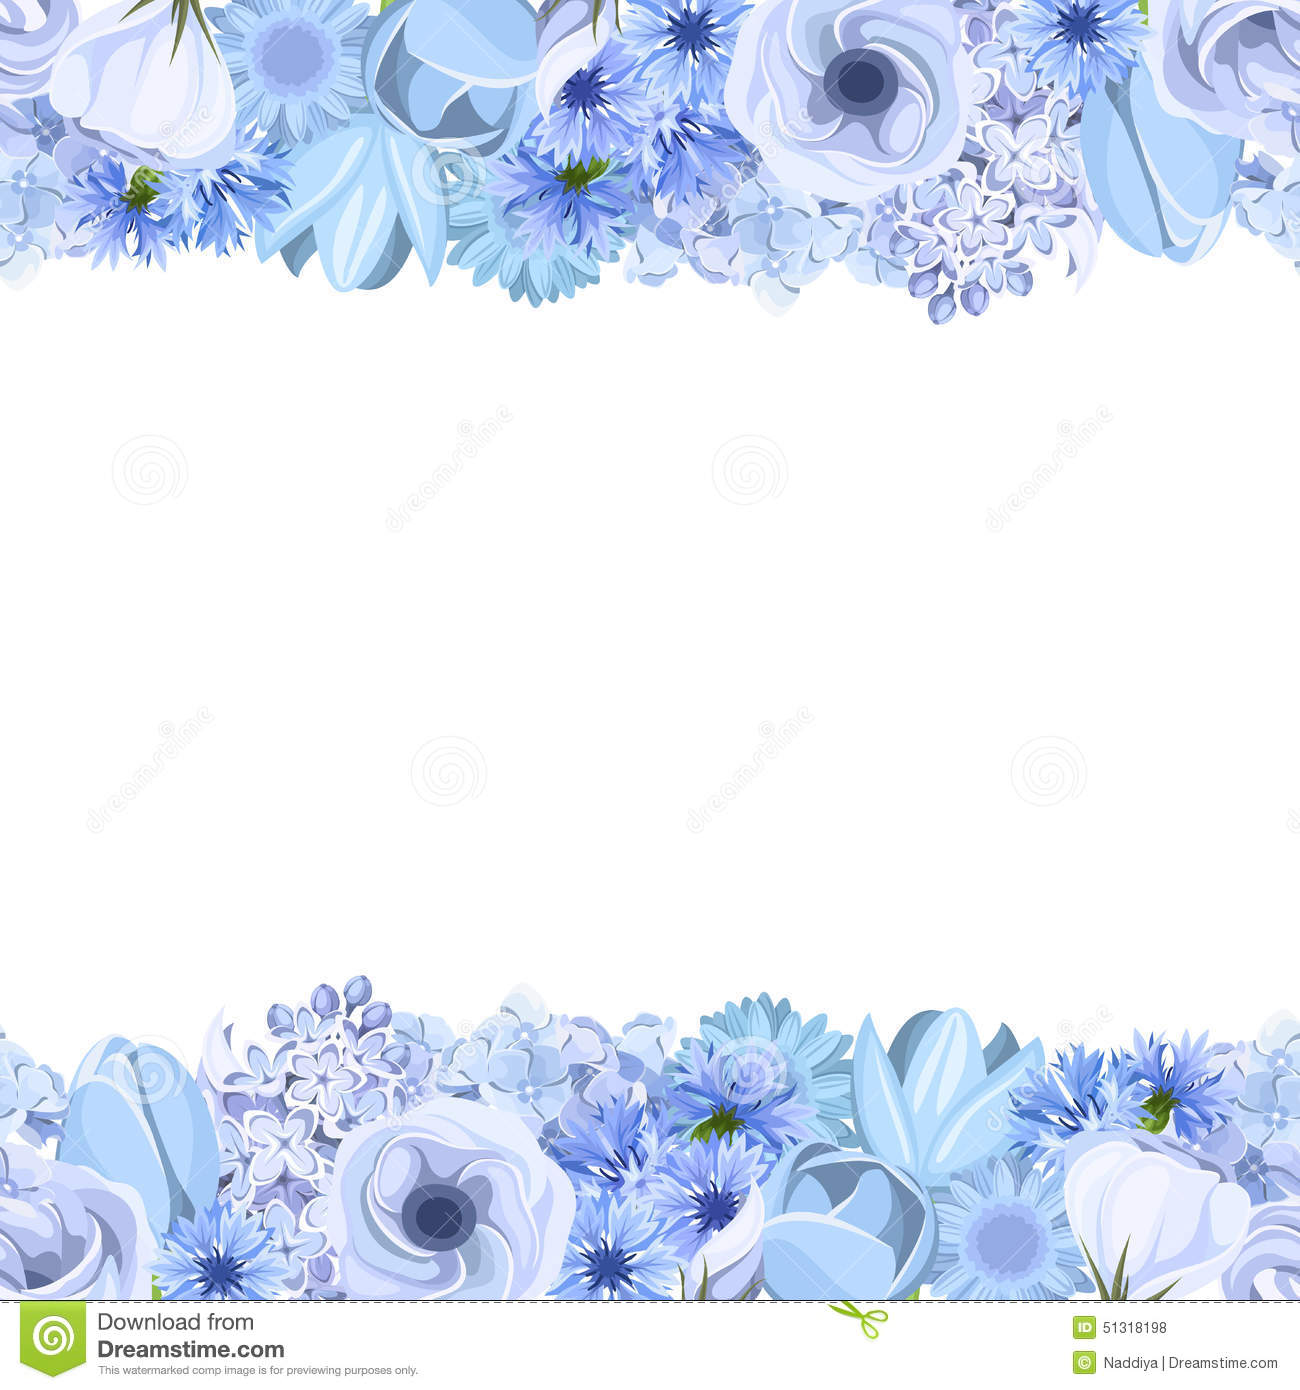 blue flower backgrounds vector - photo #10